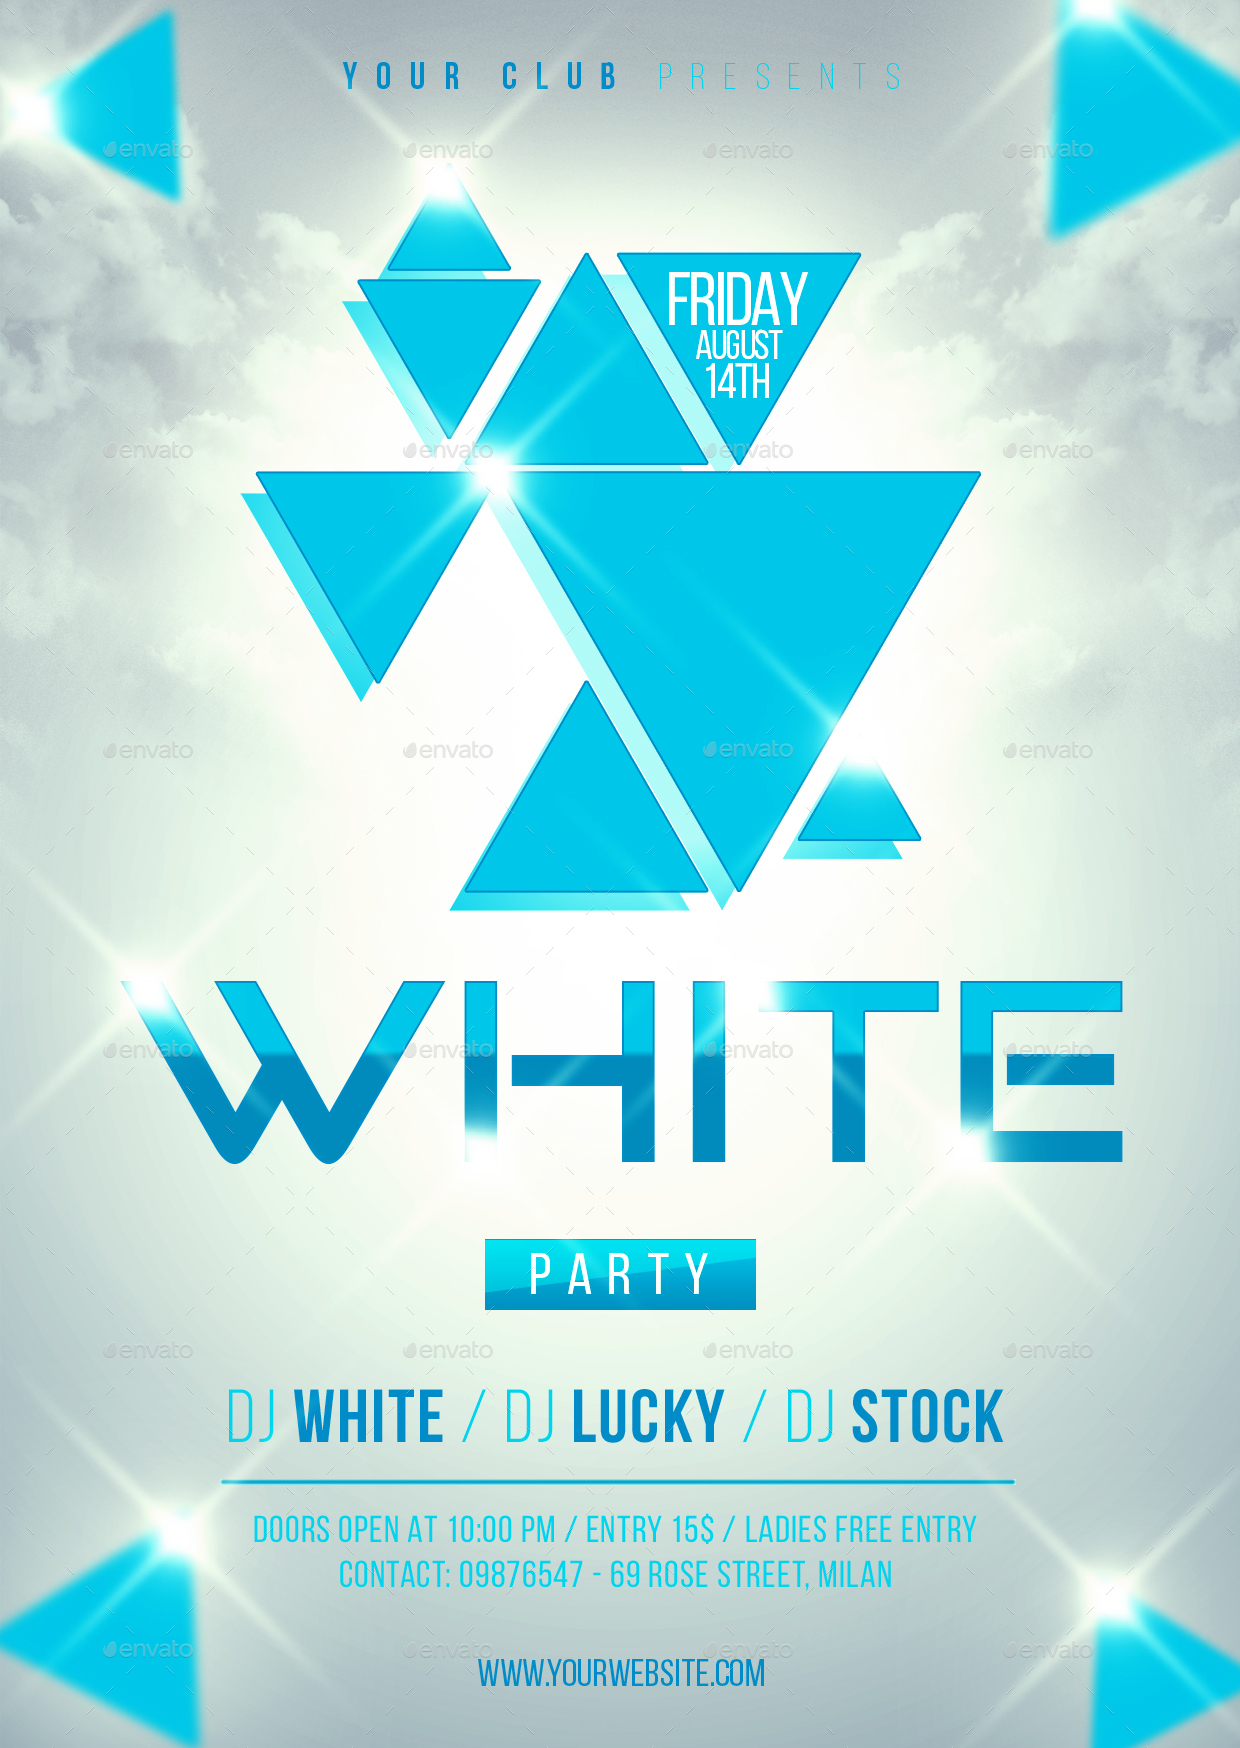 White Party Flyer Template By Lapabrothers GraphicRiver